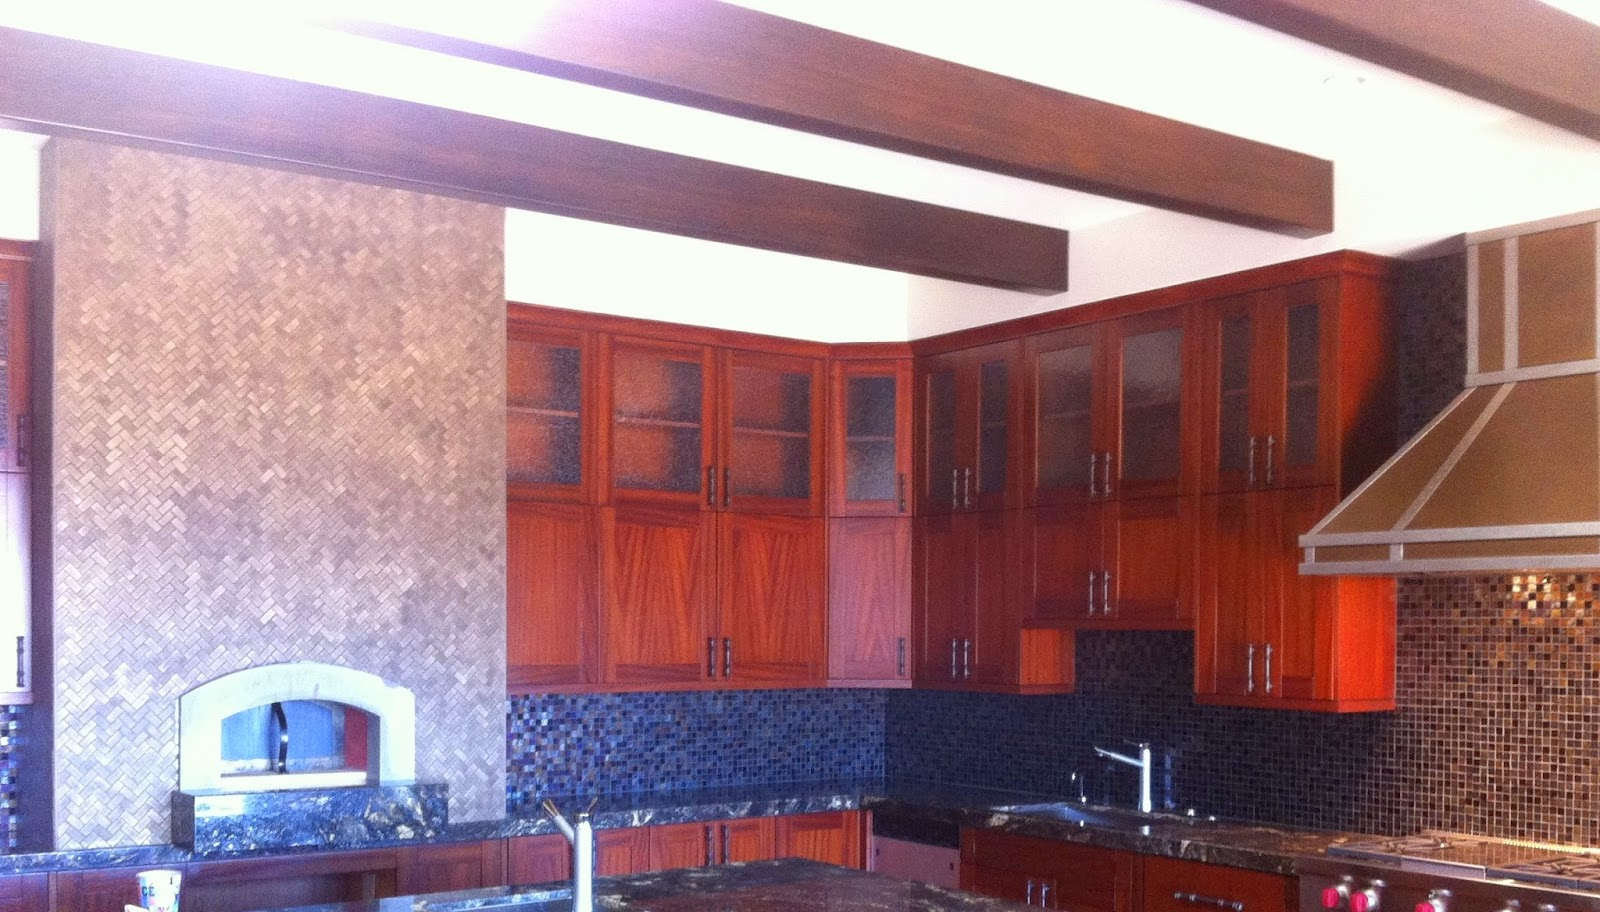 Kaanapali Lanikeha Tuscan Kitchen, backsplash is Oceanside Glass Tile